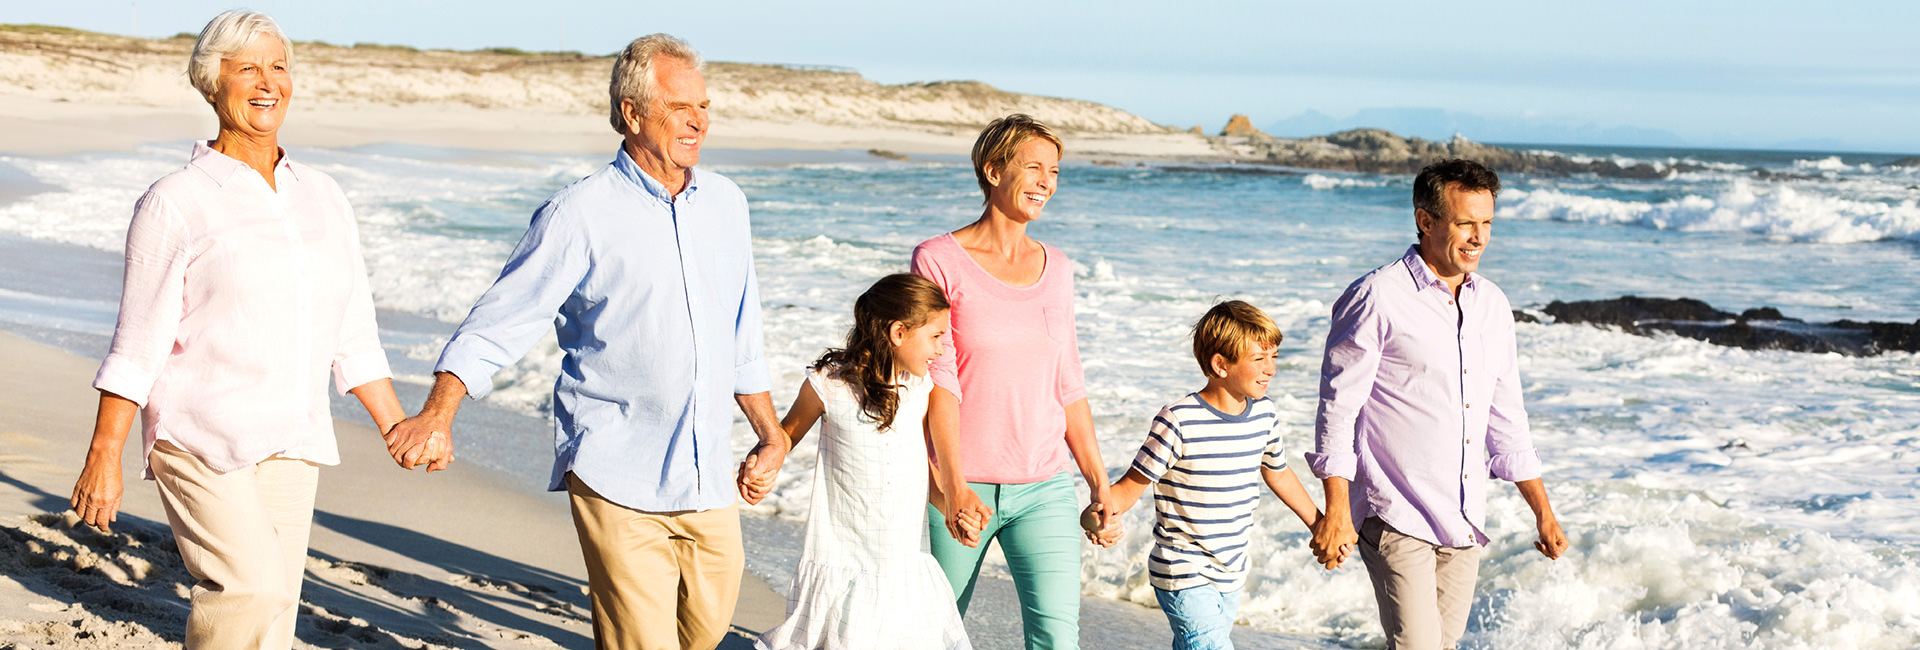 Random selection for Parent and Grandparent Program by Immigration, Refugees and Citizenship Canada